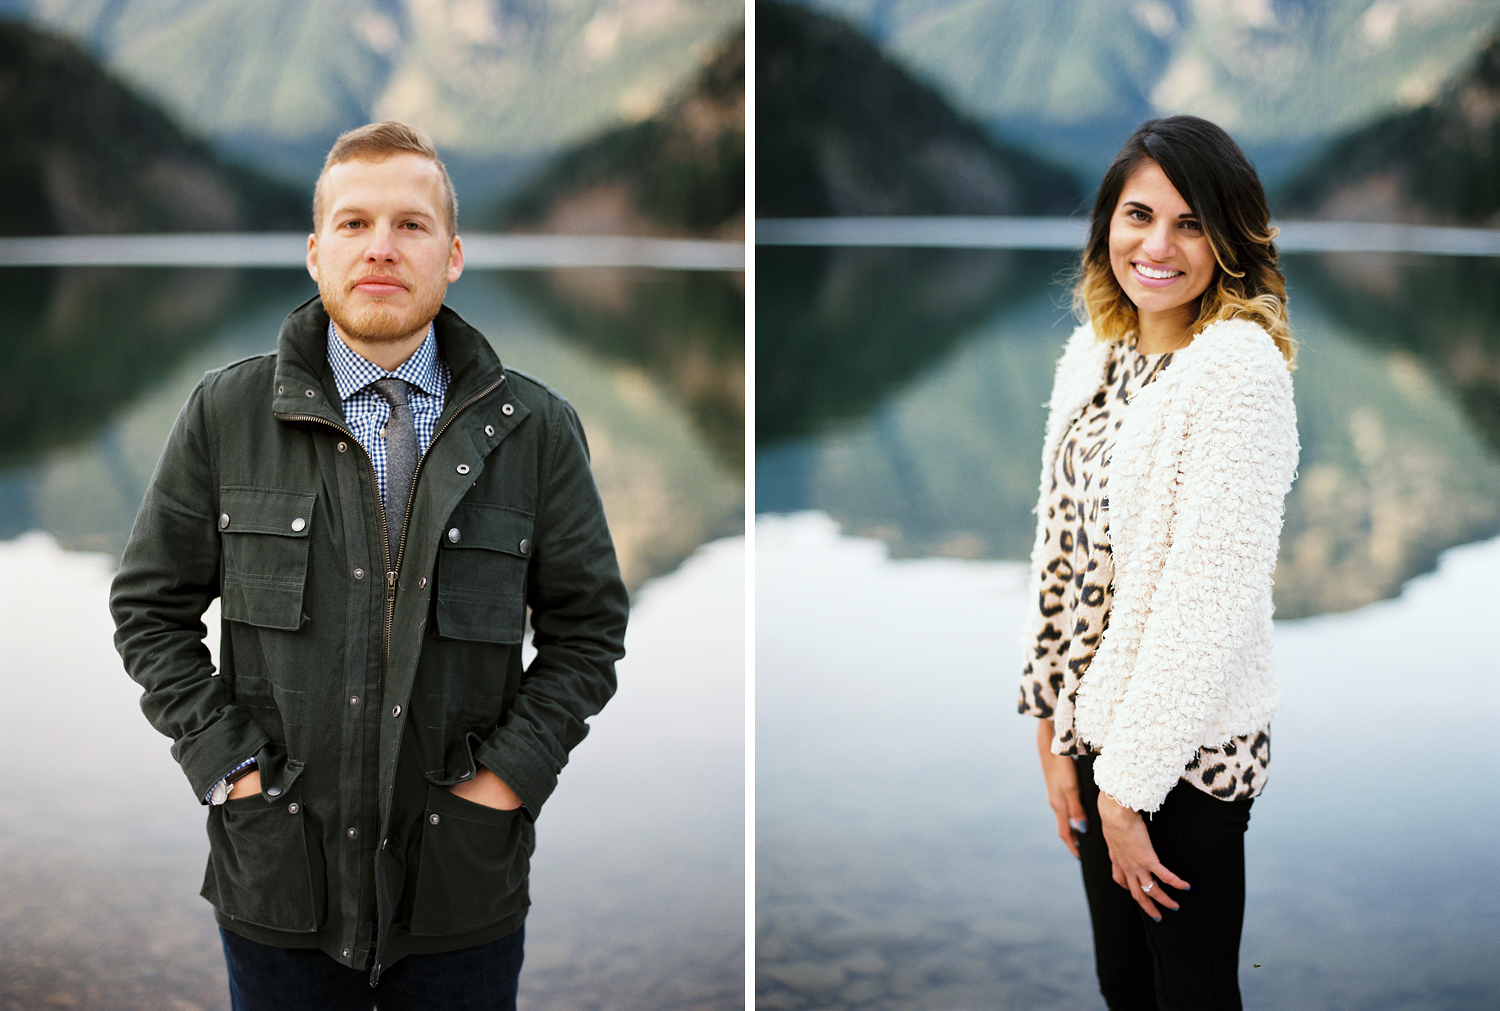 adventure-mountain-engagement-session-lake-diablo-film-0010.JPG